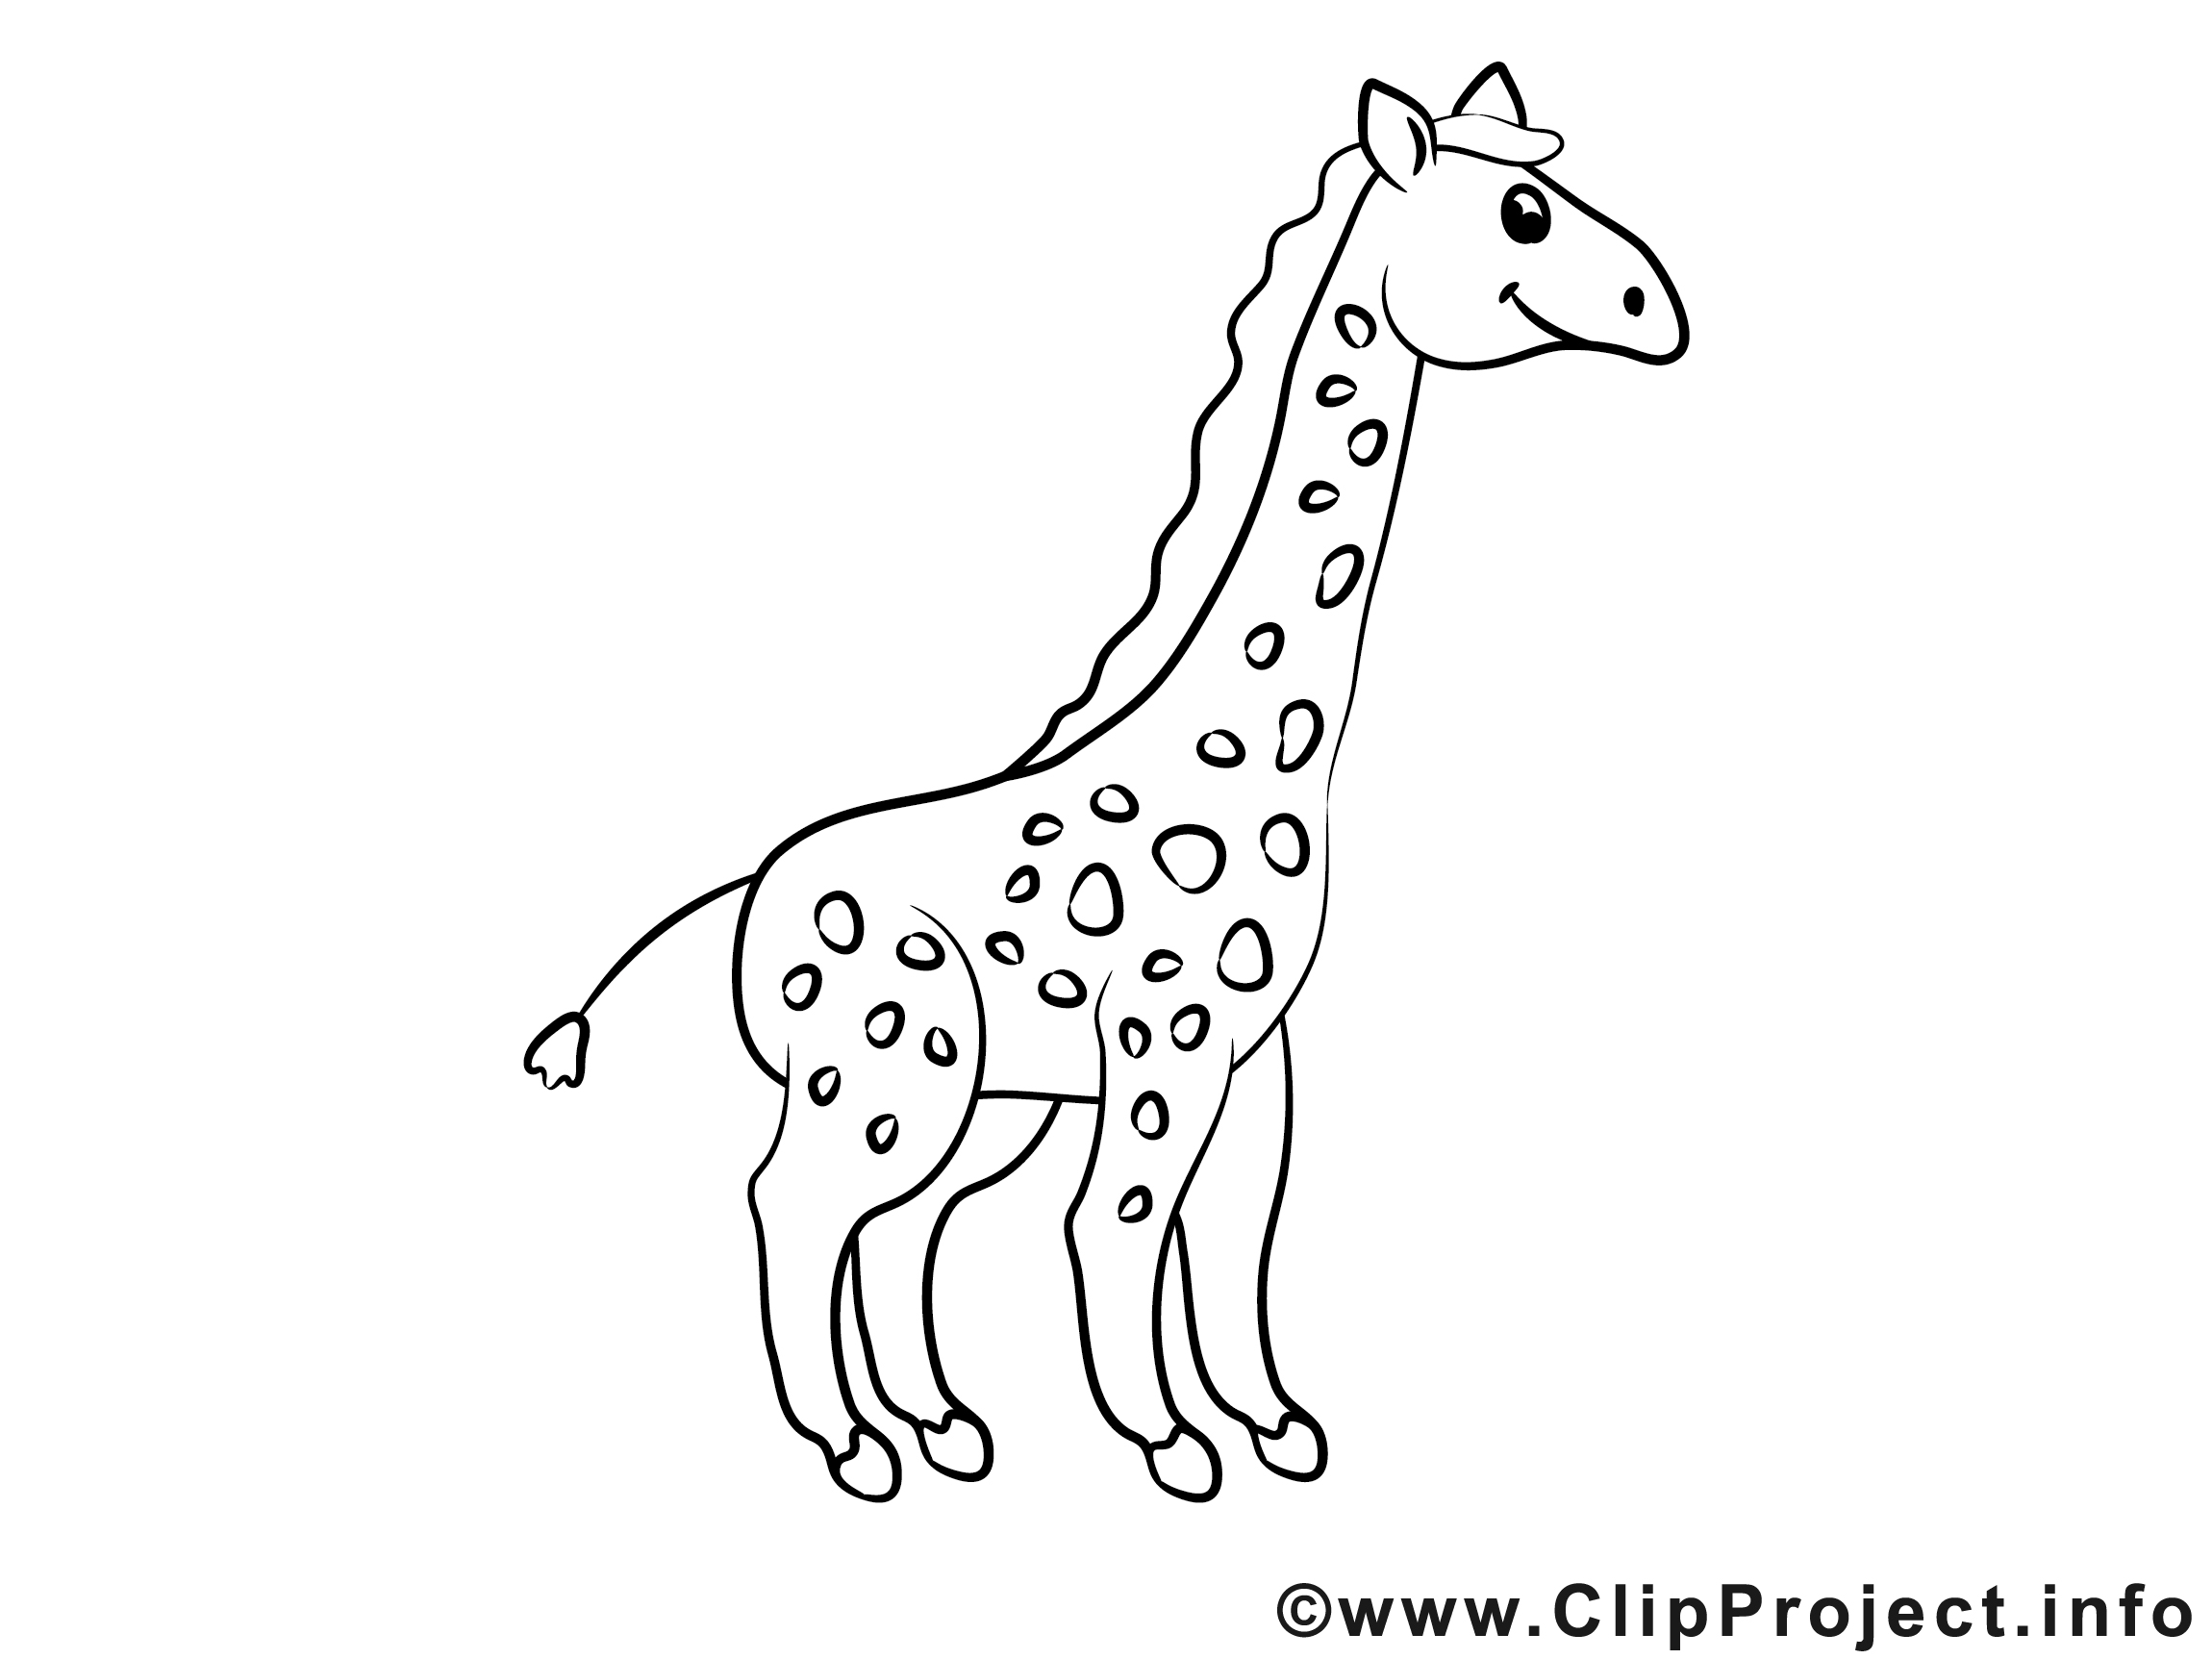 Coloriage Voiture Girafe.Girafe Illustration A Colorier Clipart Divers Pages A